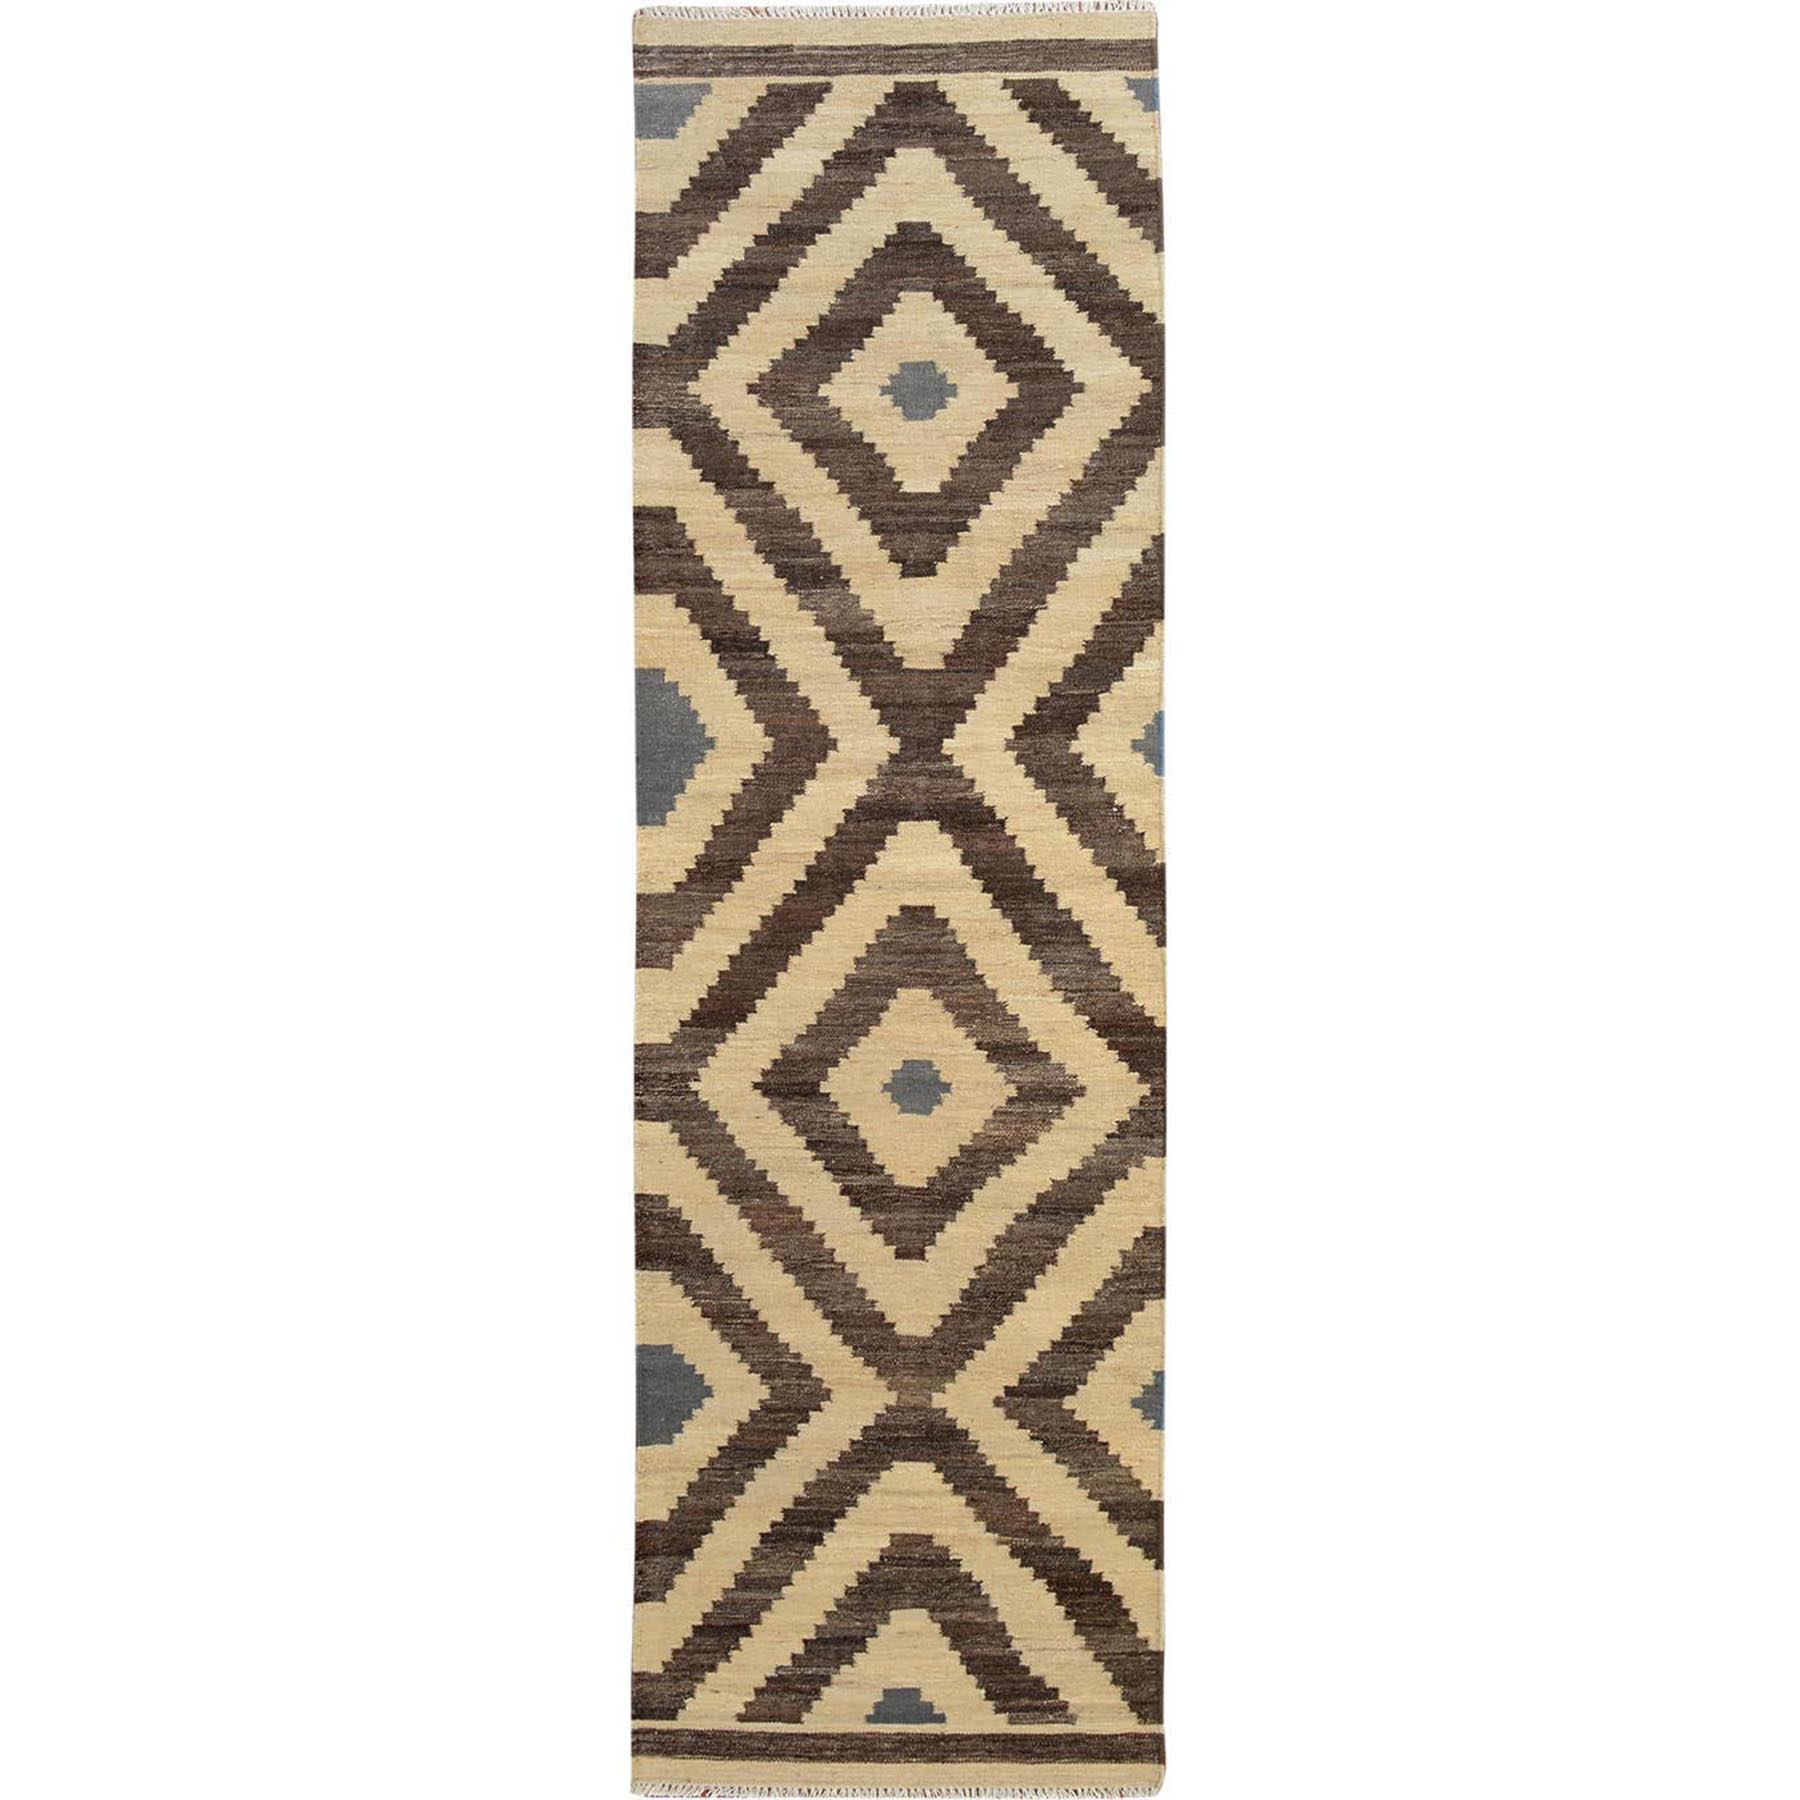 "2'9""X10' Brown Reversible Afghan Kilim Flat Weave Runner Pure Wool Hand Woven Oriental Rug moae7d7e"